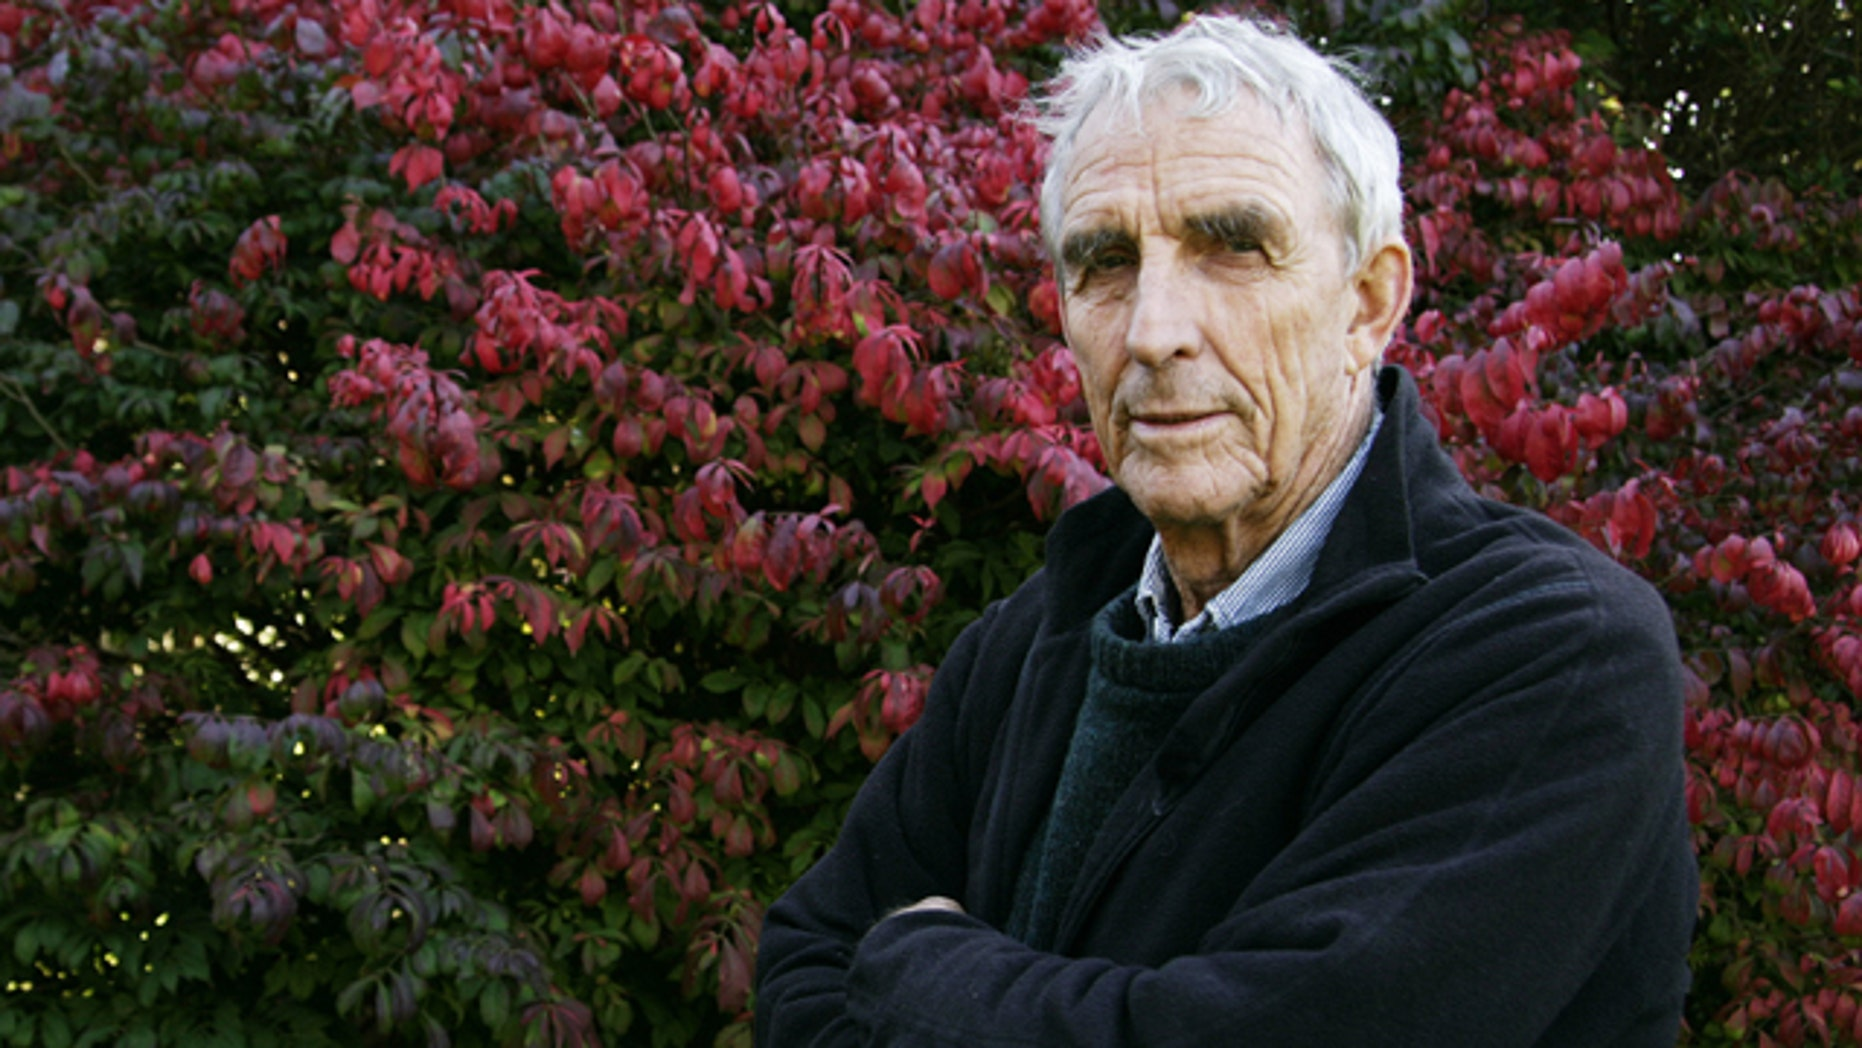 FILE - Writer Peter Matthiessen stands in the yard of his house in Sagaponack, N.Y. in this Oct. 28, 2004 file photo. Matthiessen, award-winning author of more than thirty books, world-renowned naturalist, explorer, Buddhist teacher, and political activist, died Saturday, April 5, 2014 after an illness of some months,according to his publisher Geoff Kloske of Riverhead Books. He was 86.  (AP Photo/Ed Betz, File)